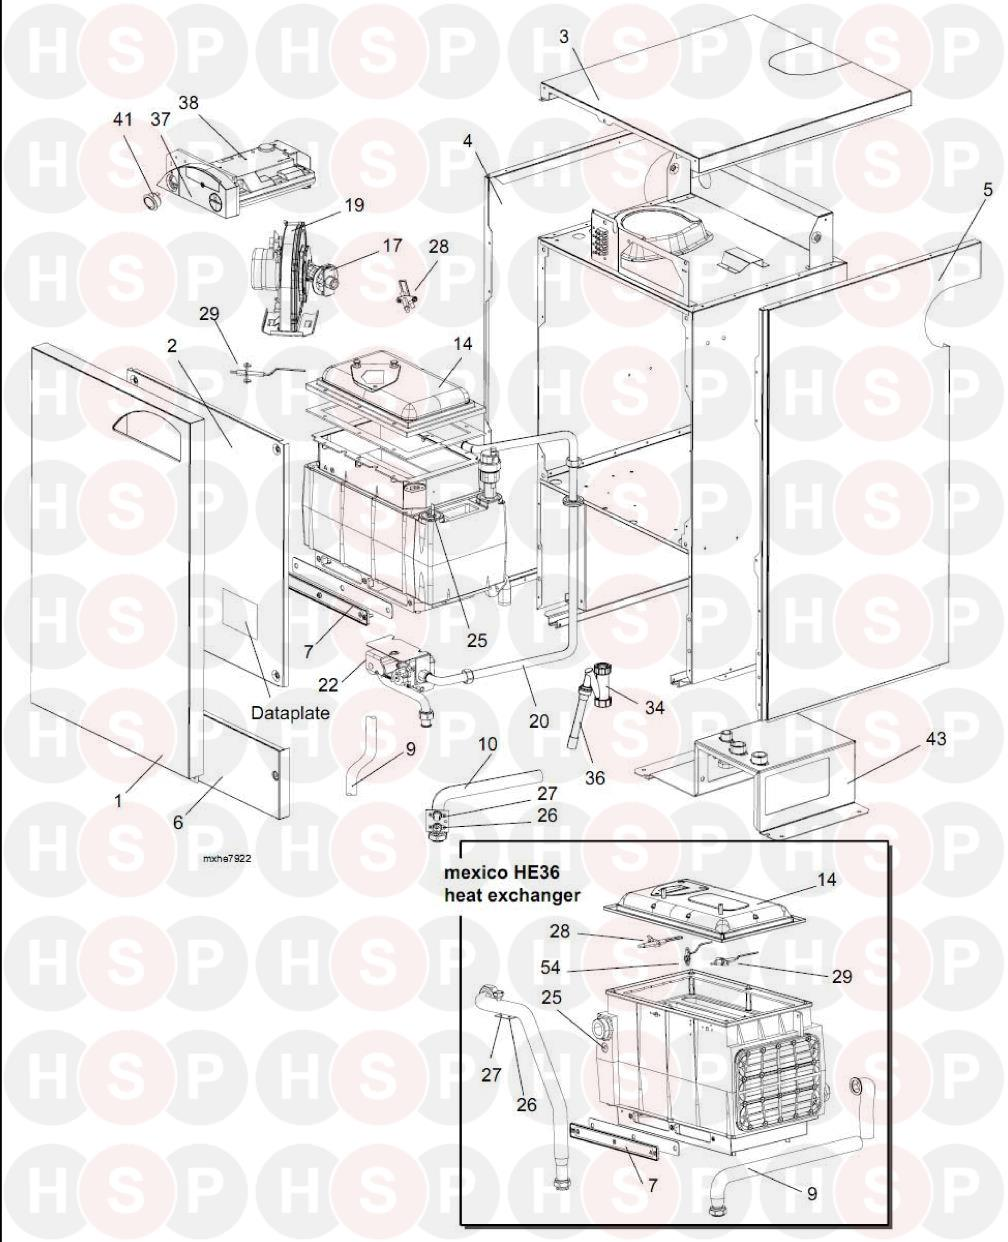 Ideal MEXICO HE 18 Appliance Diagram (EXPLODED VIEW